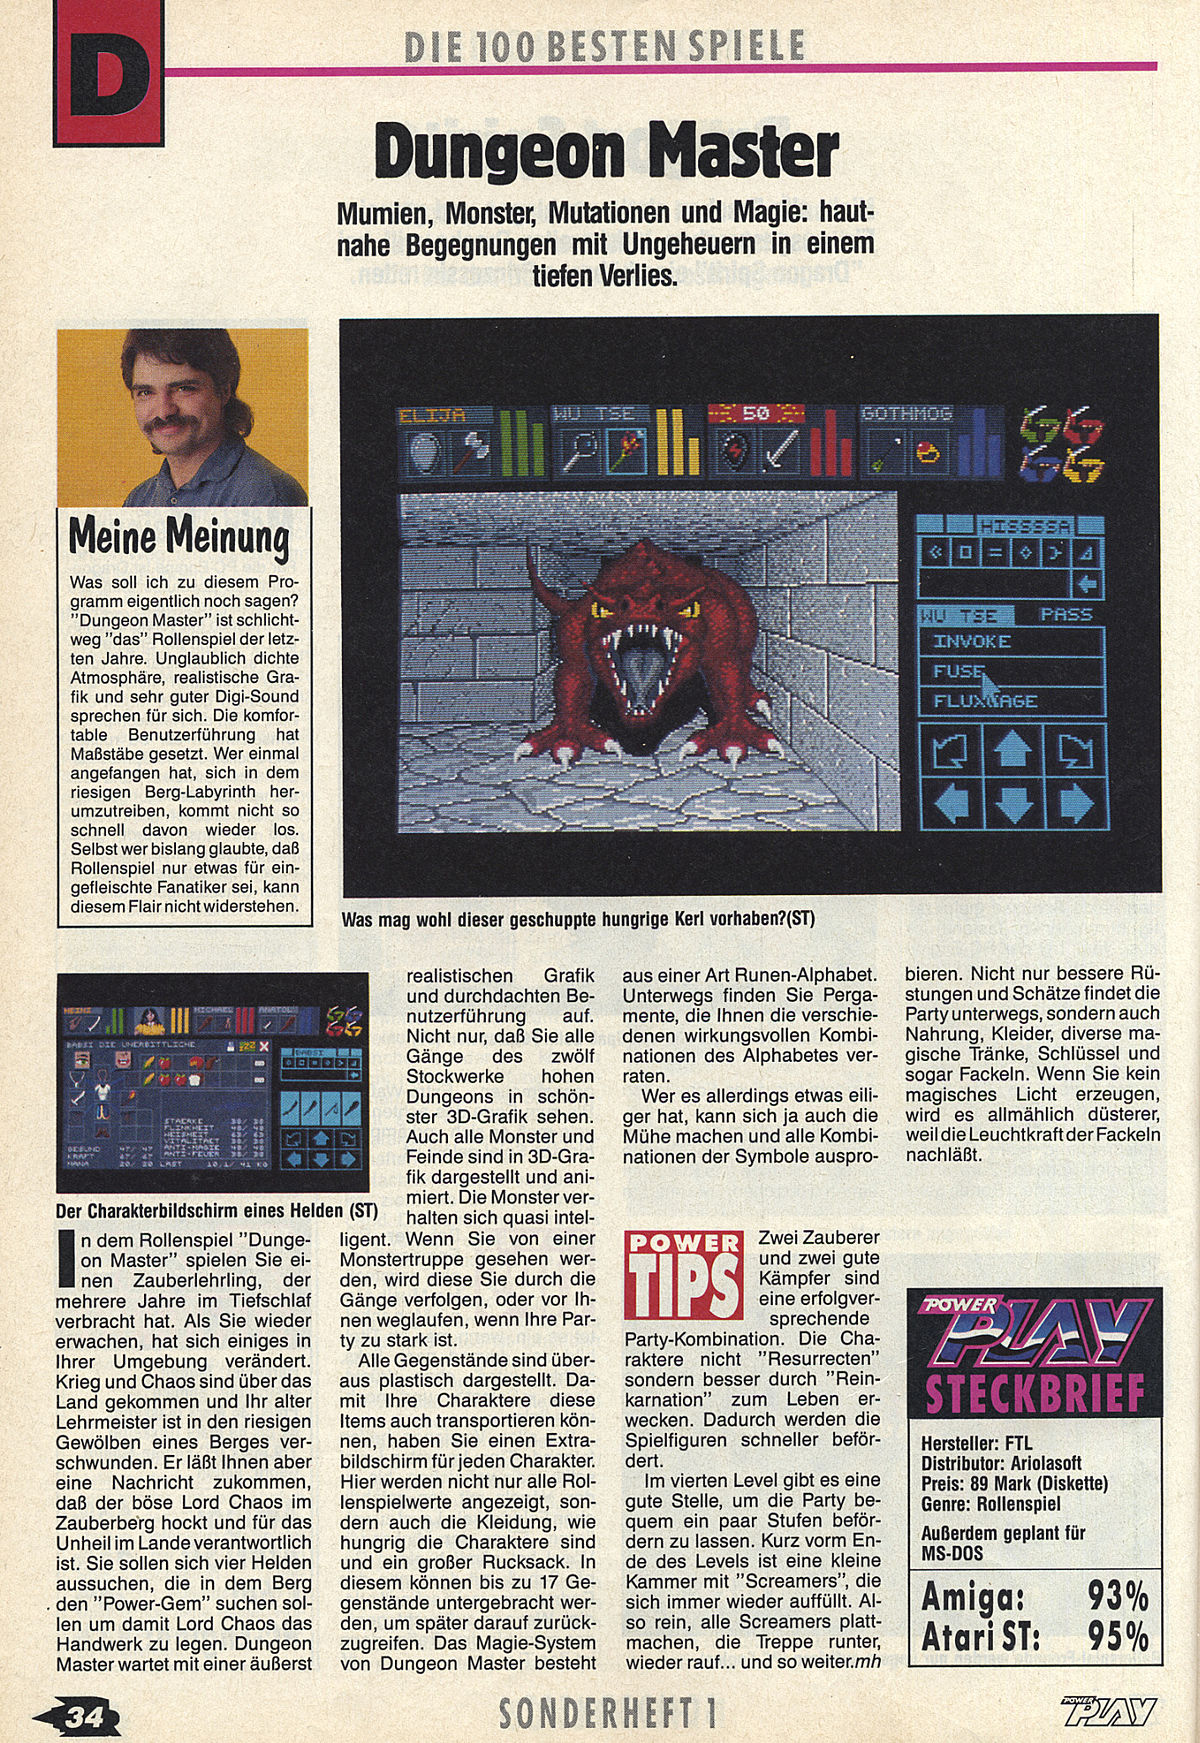 Dungeon Master Review published in German magazine 'Power Play', Die 100 Besten Spiele 1989, Page 34